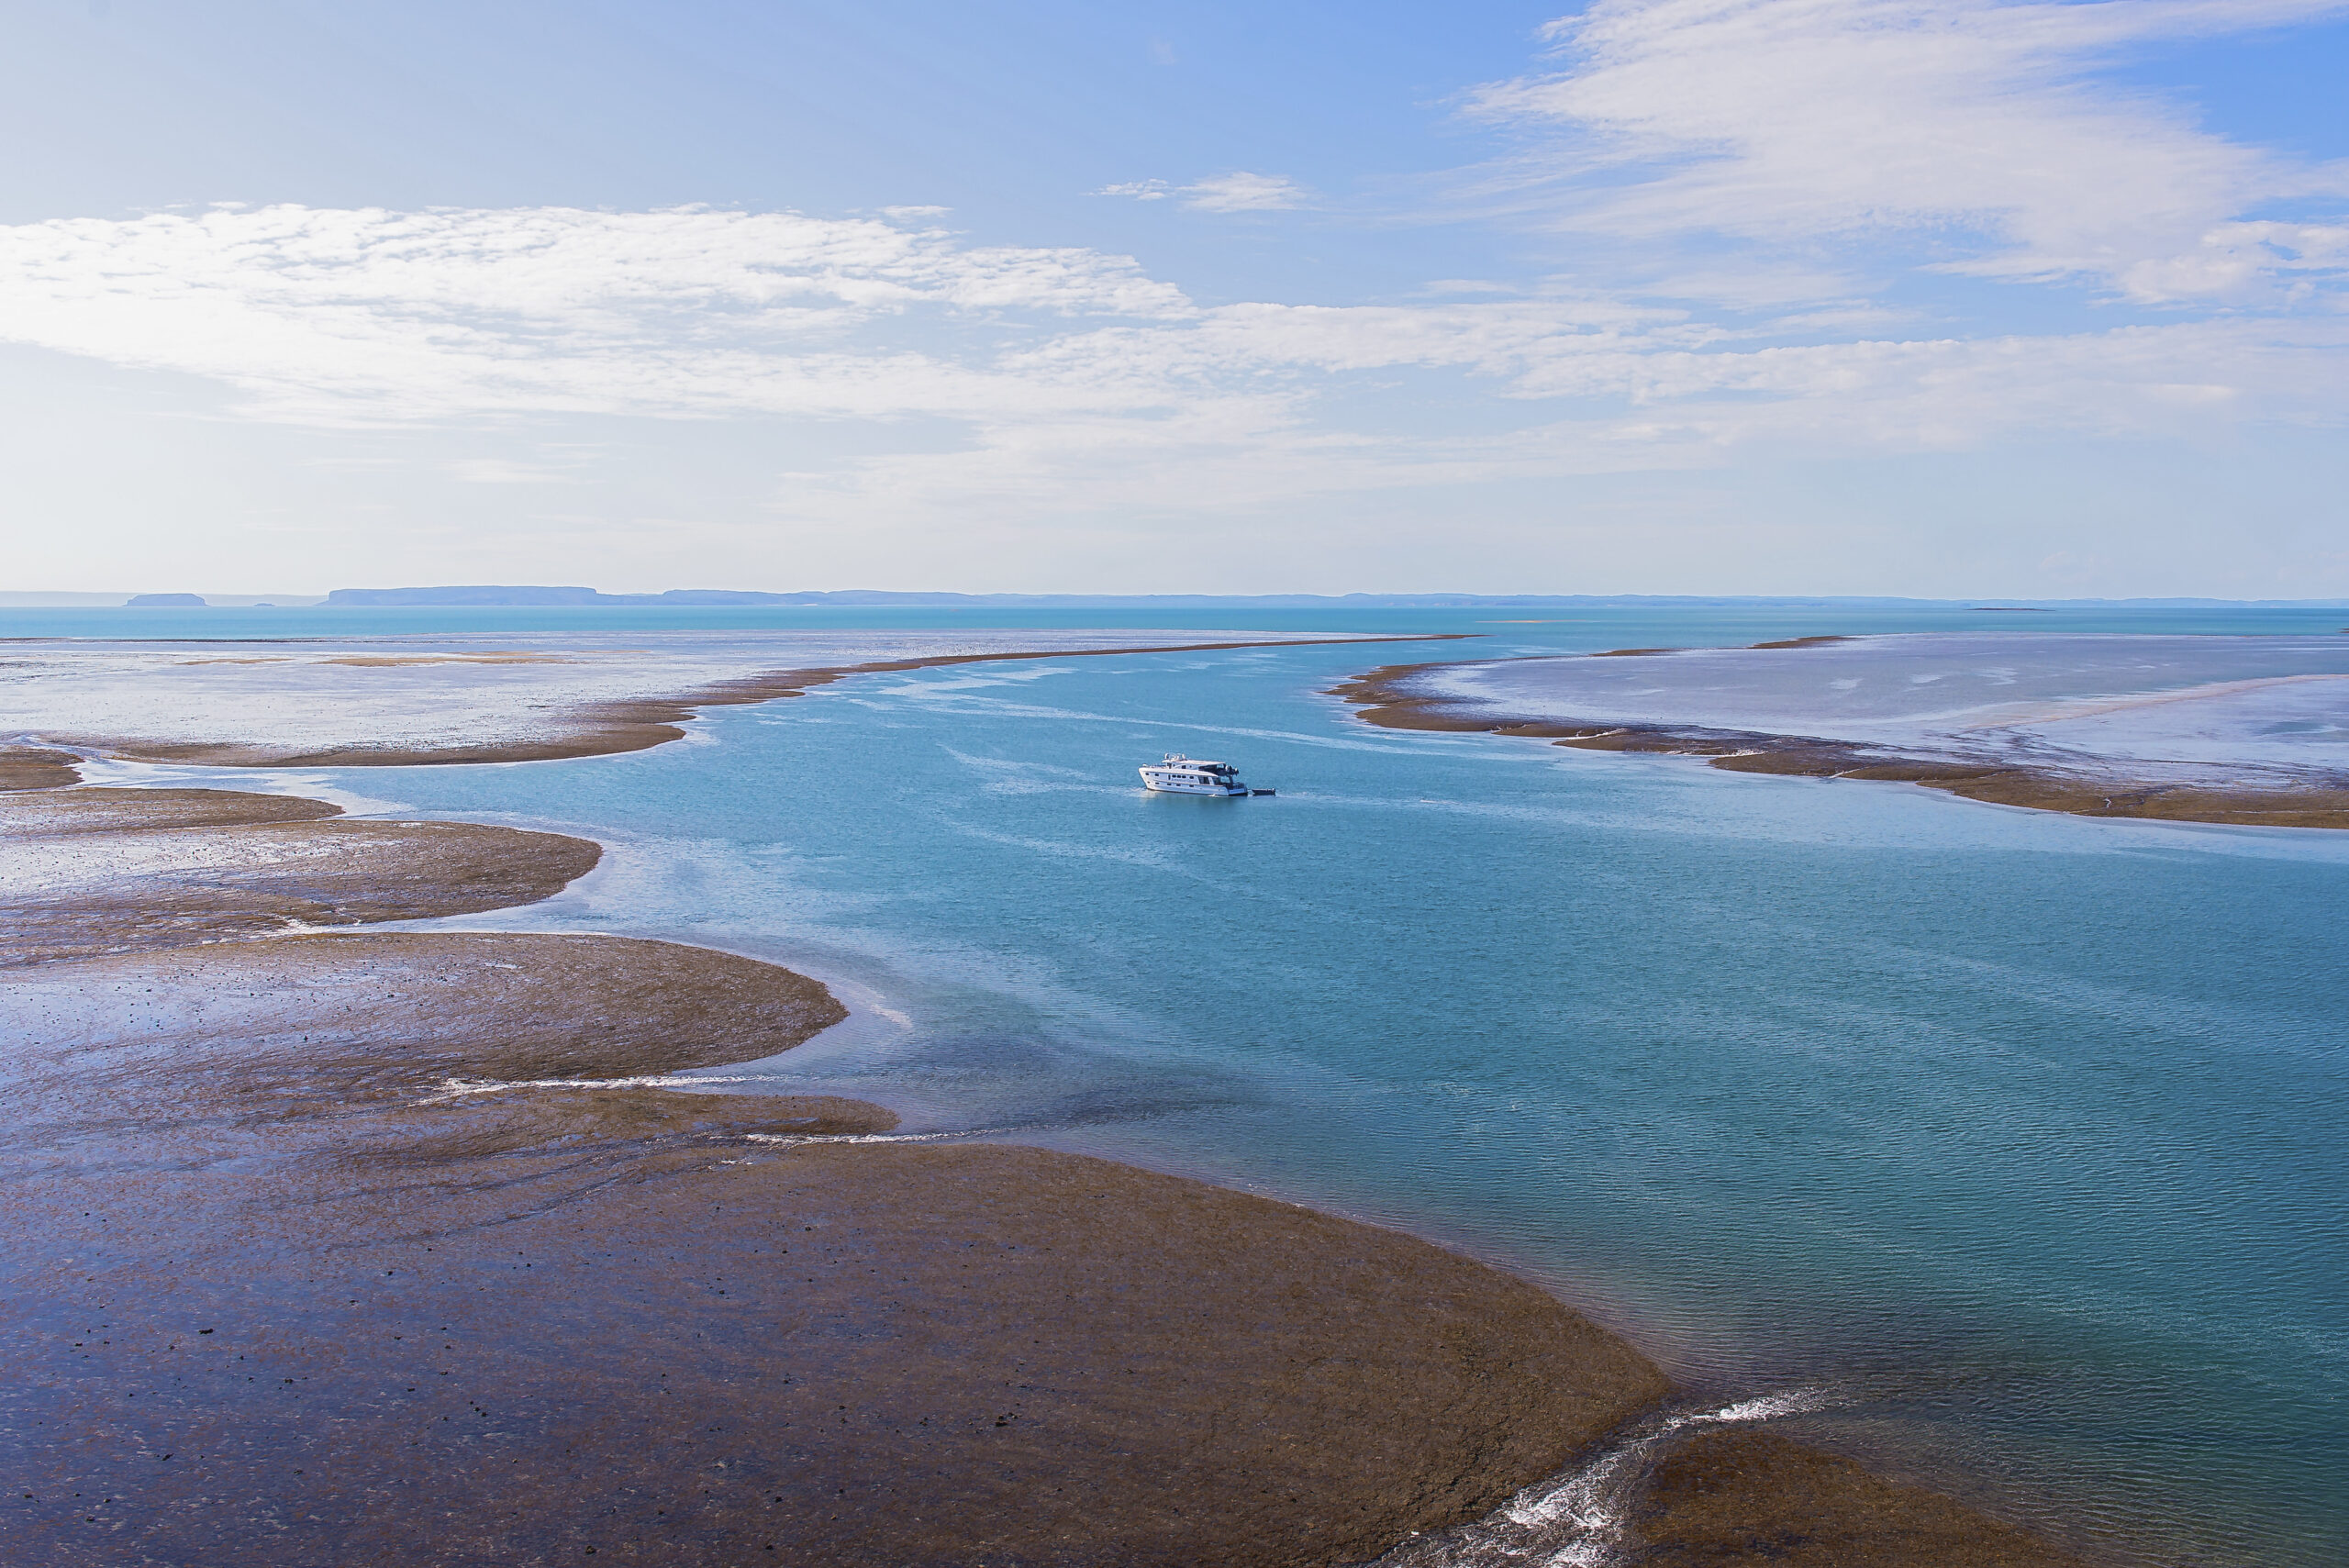 YOTSPACE superyacht voyages - Kimberley -  Explore iconic destinations such as Montgomery Reef